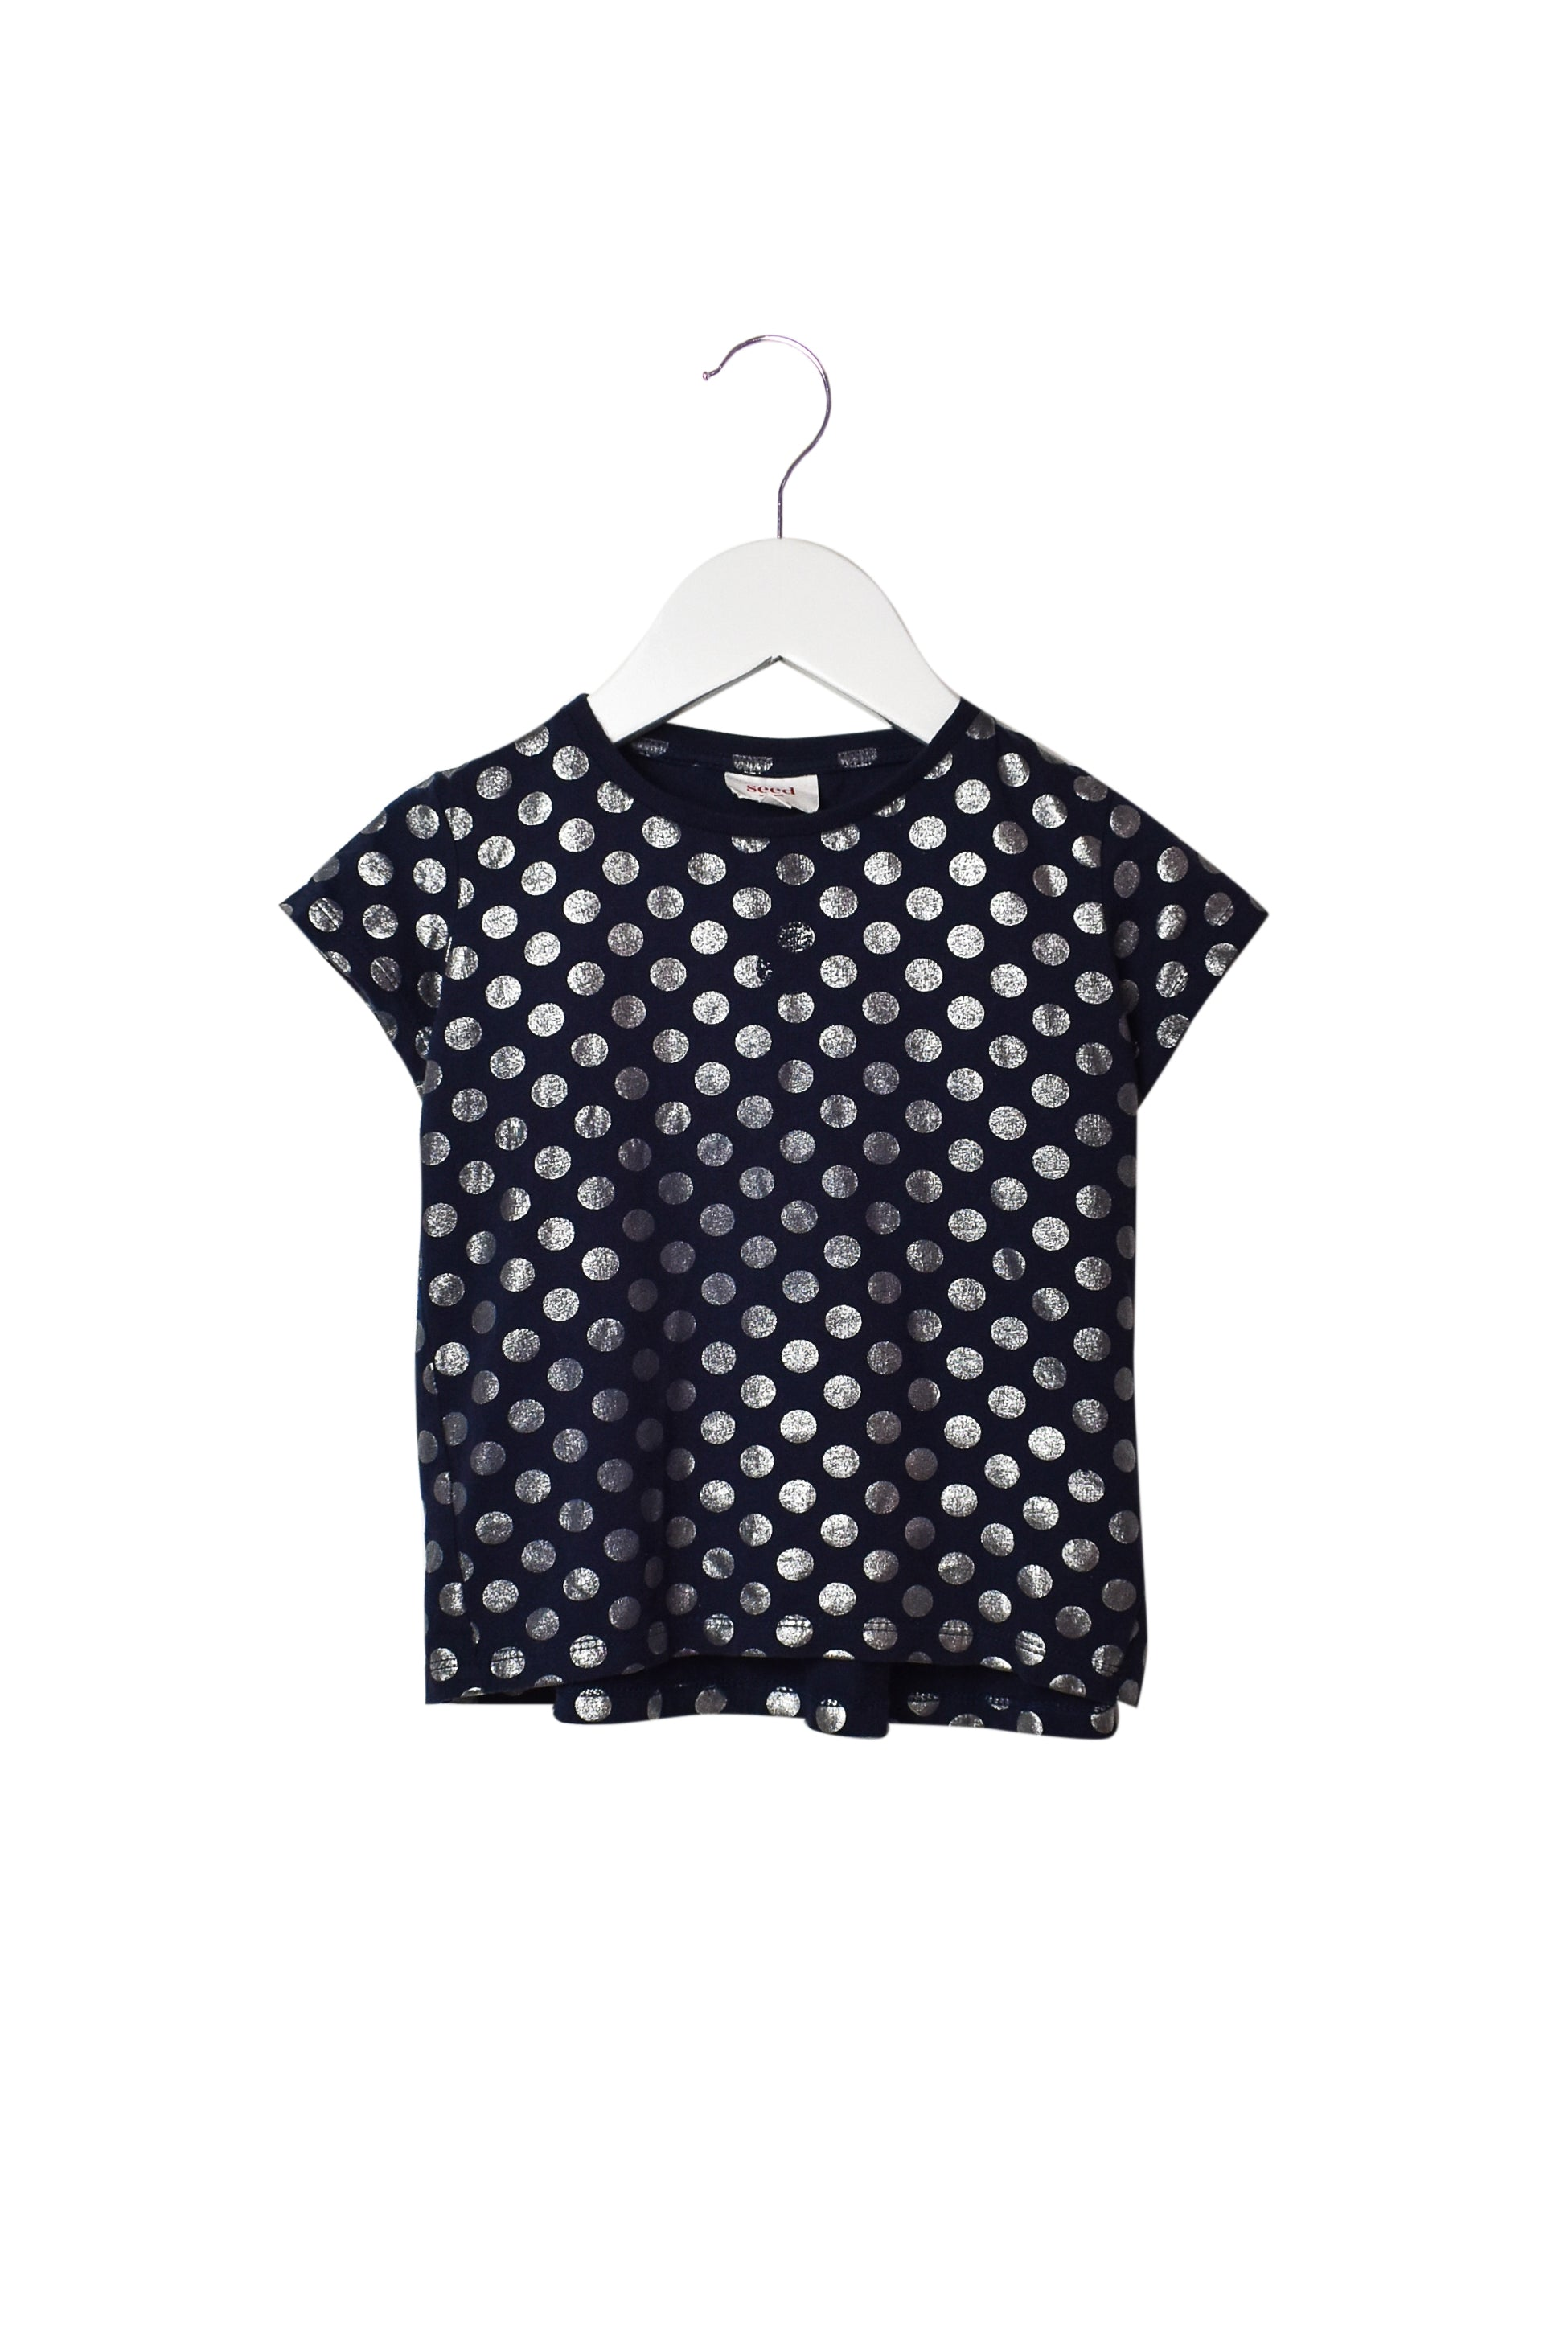 10006791 Seed Kids~T-Shirt 2-3T at Retykle